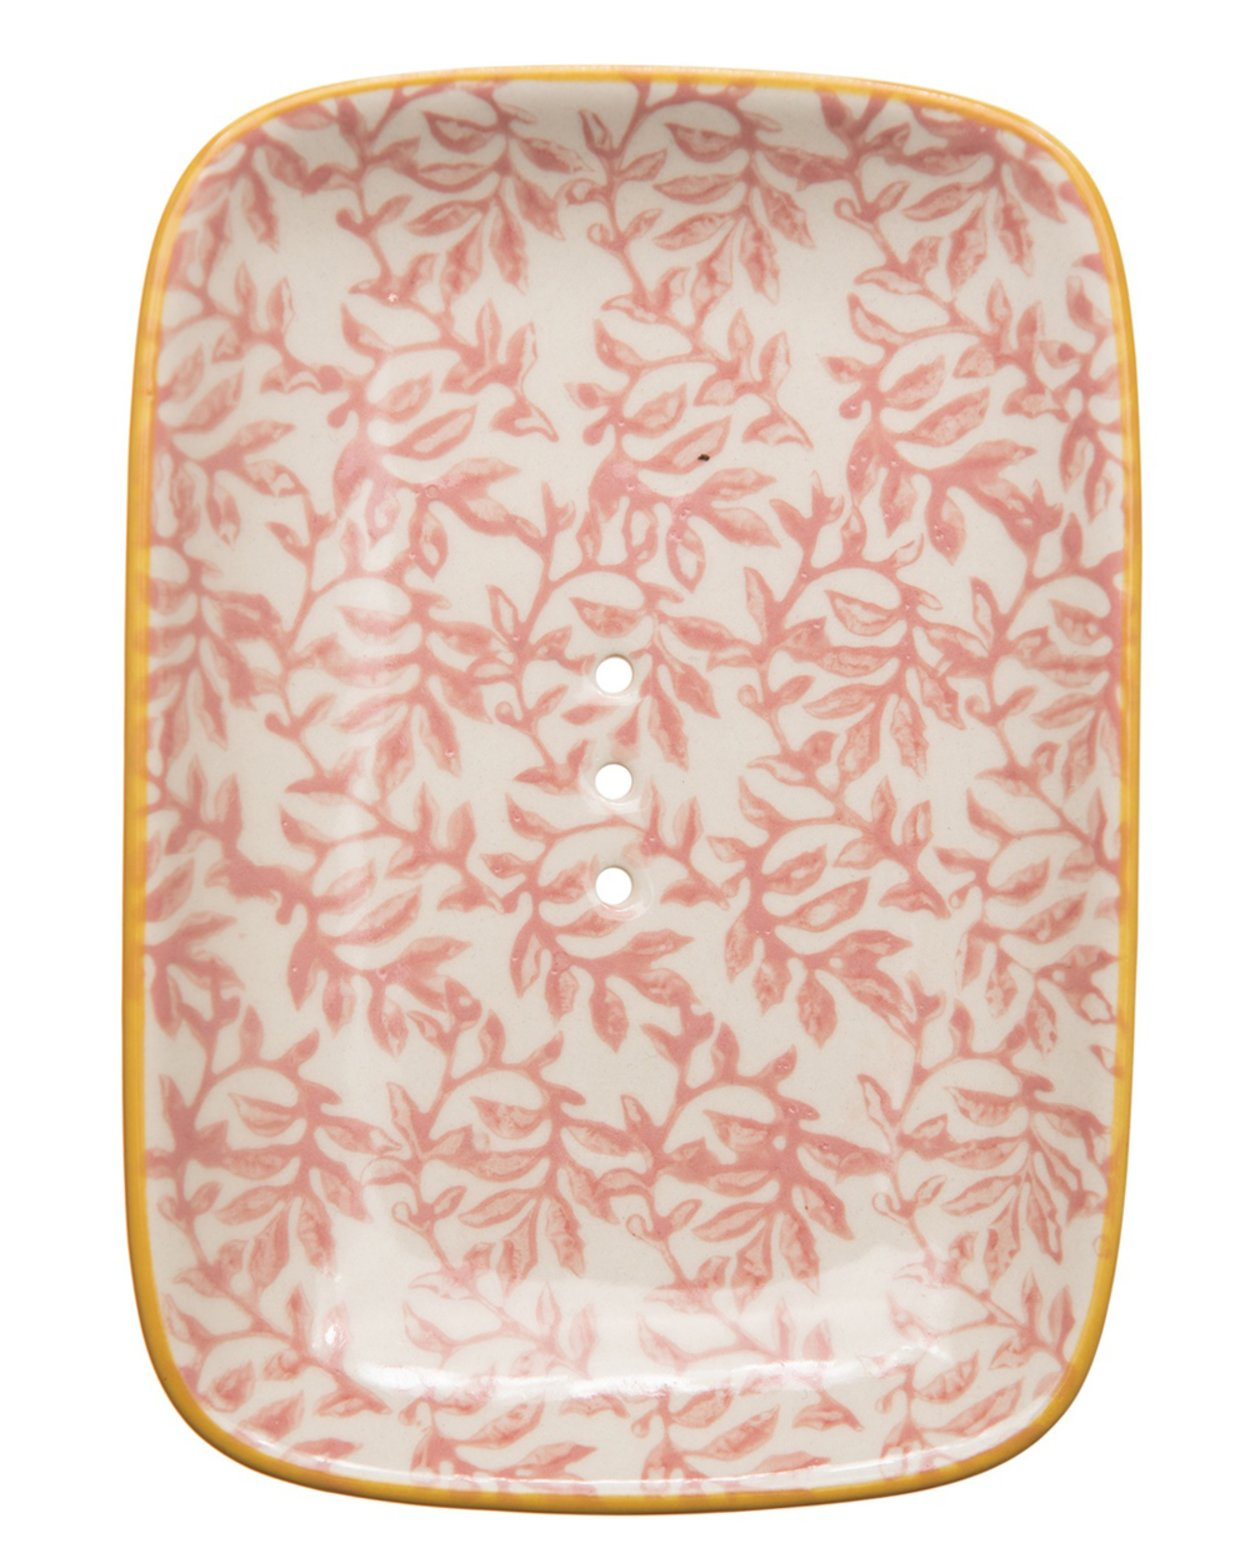 Soap Dish - Floral White & Pink